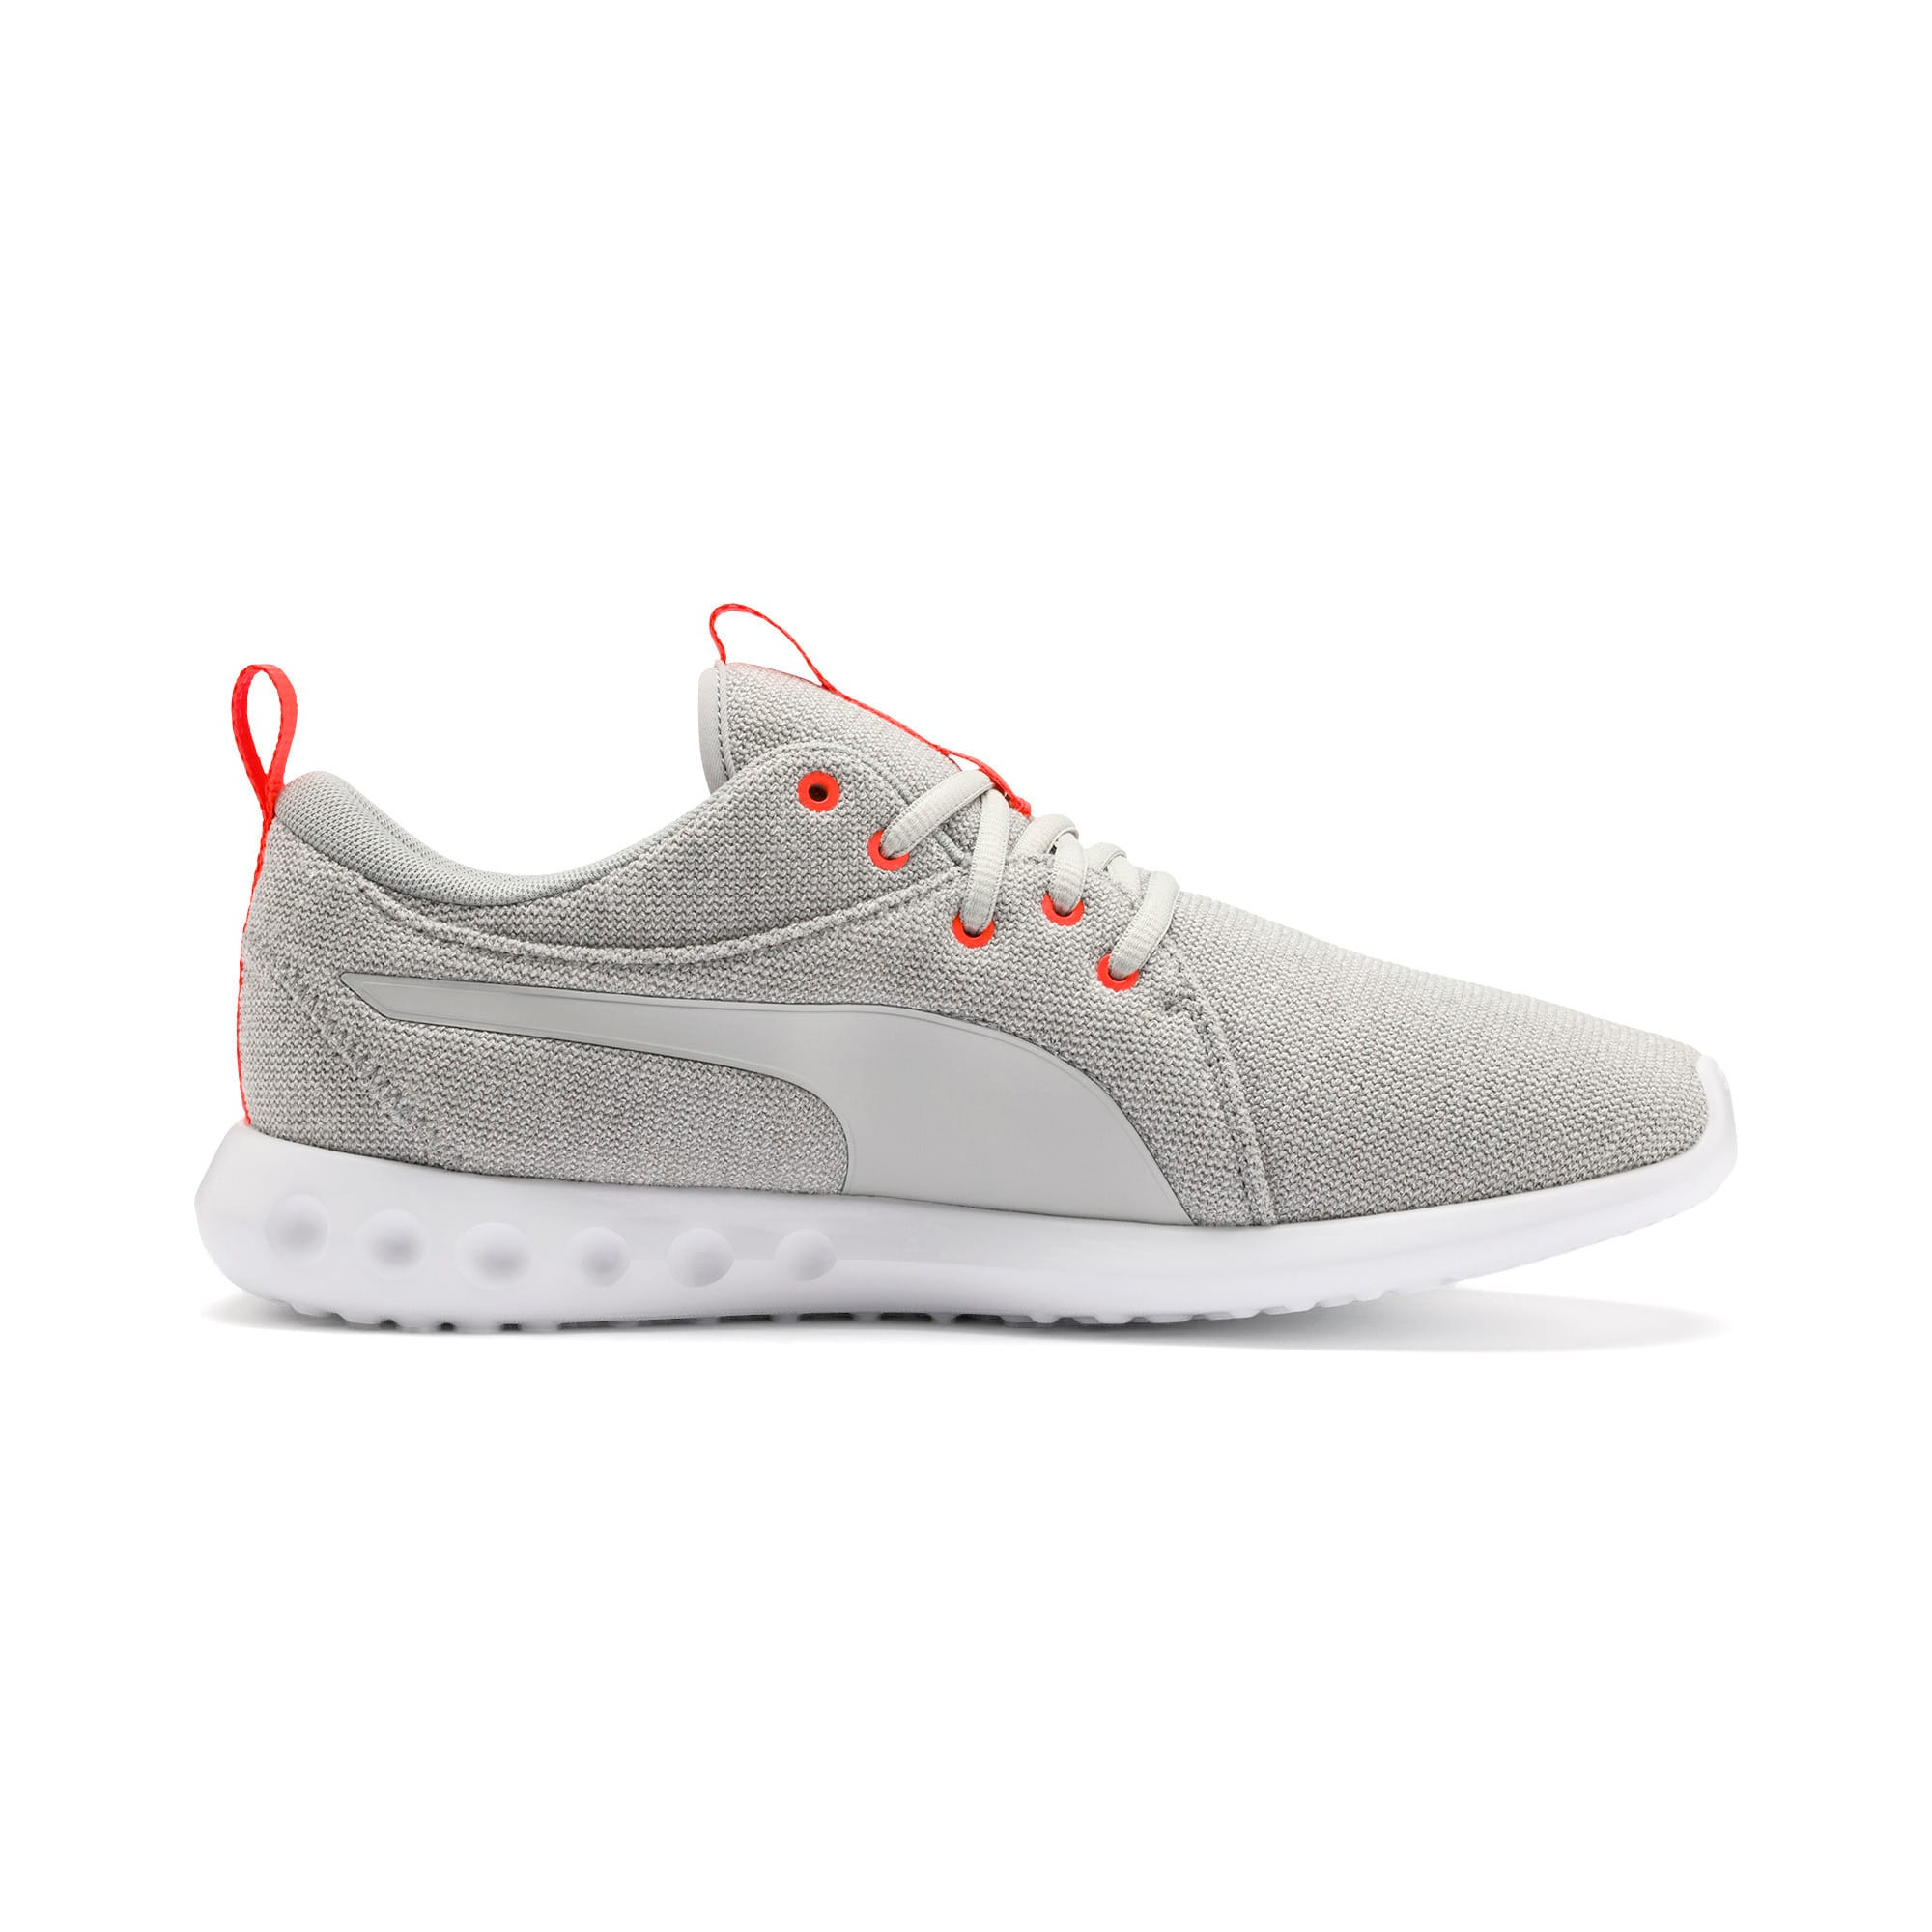 Thumbnail 6 of Carson 2 Knit Men's Training Shoes, High Rise-White-Nrgy Red, medium